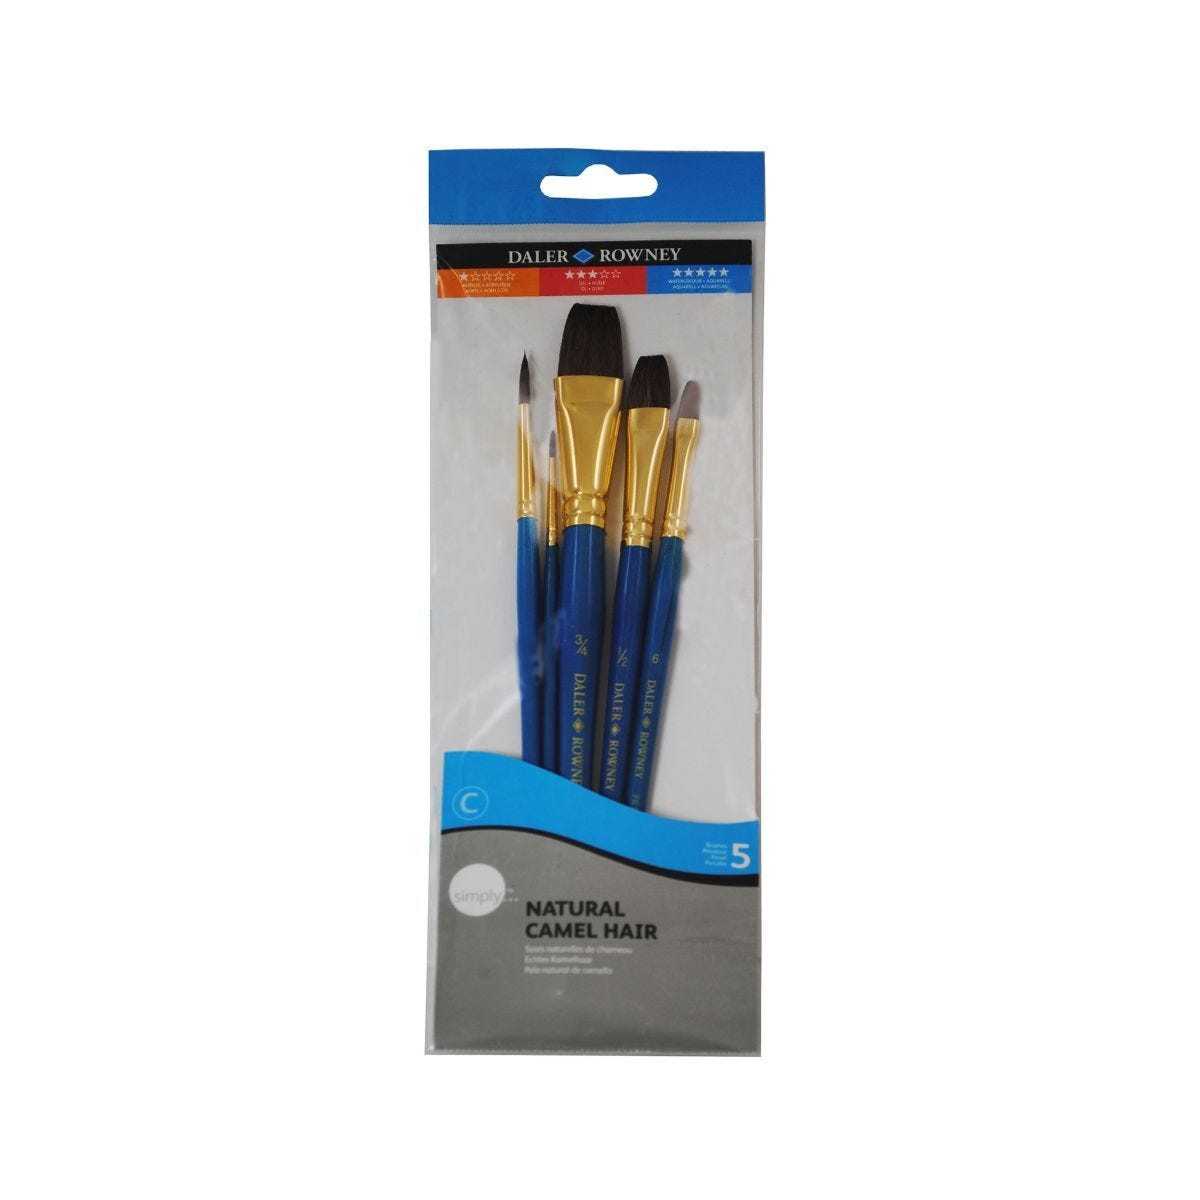 Daler Rowney Simply Camel Hair Synthetic Brushes Pack of 5